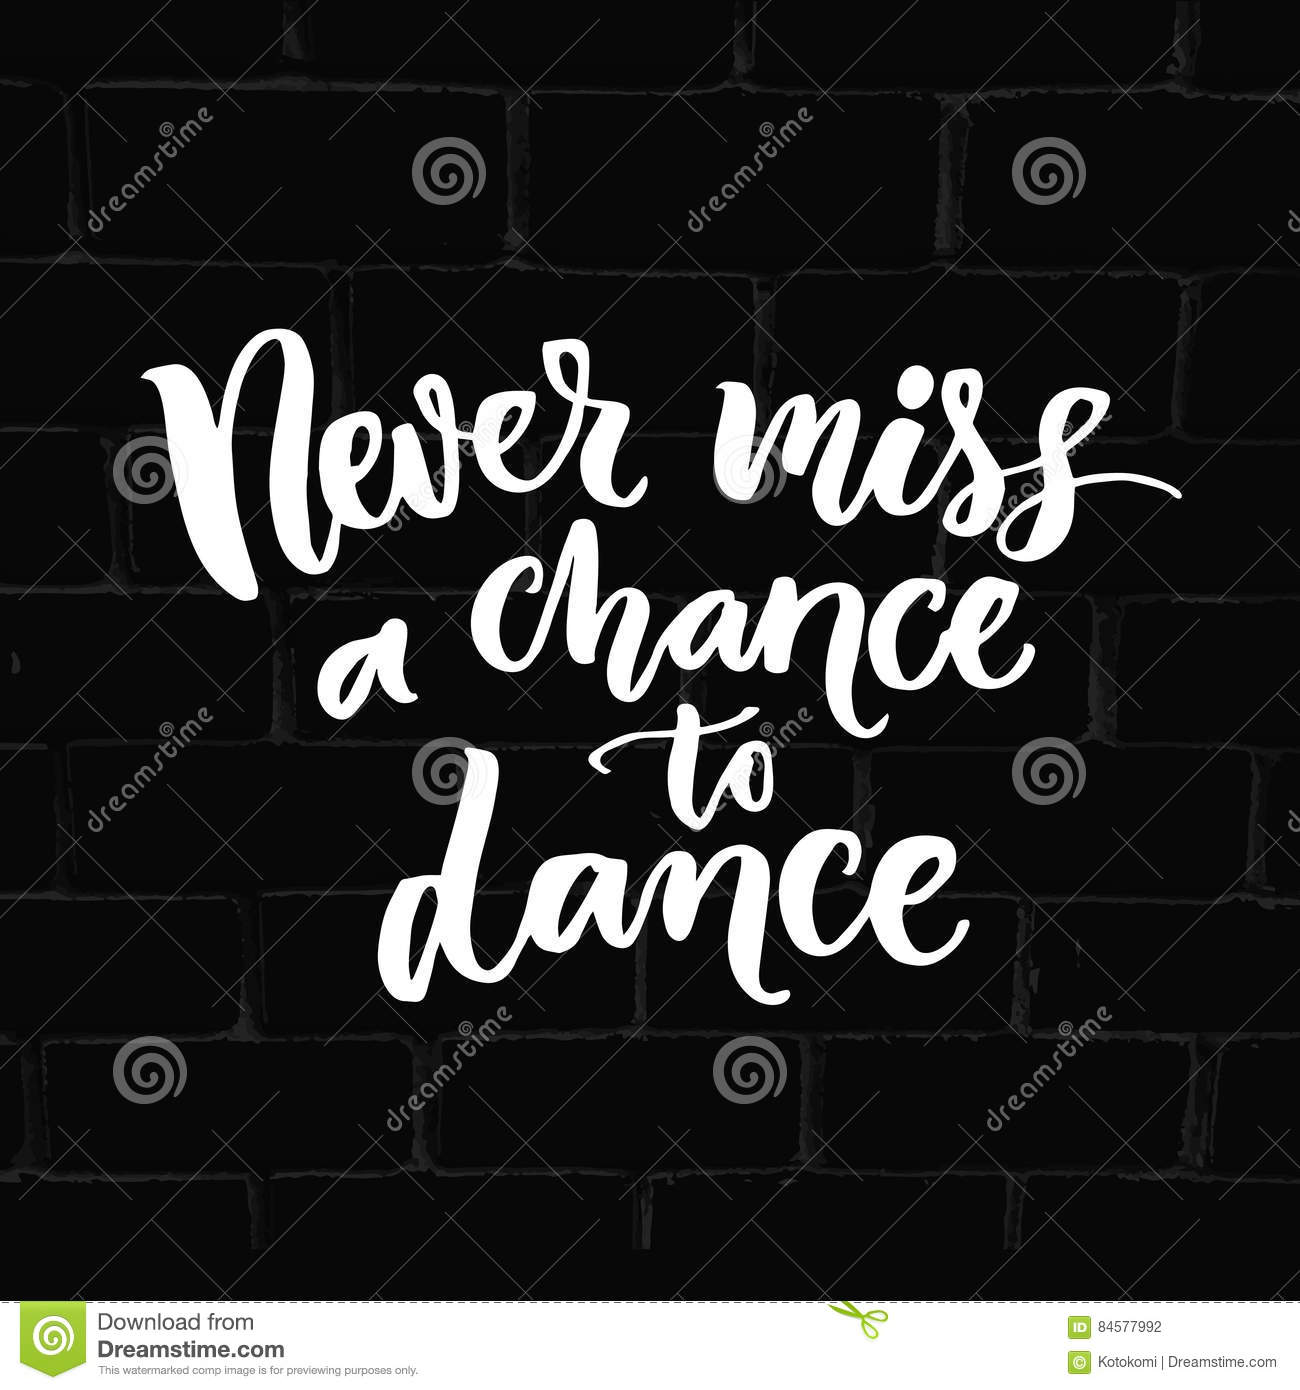 Never Miss A Chance To Dance Inspiration Phrase About Dancing